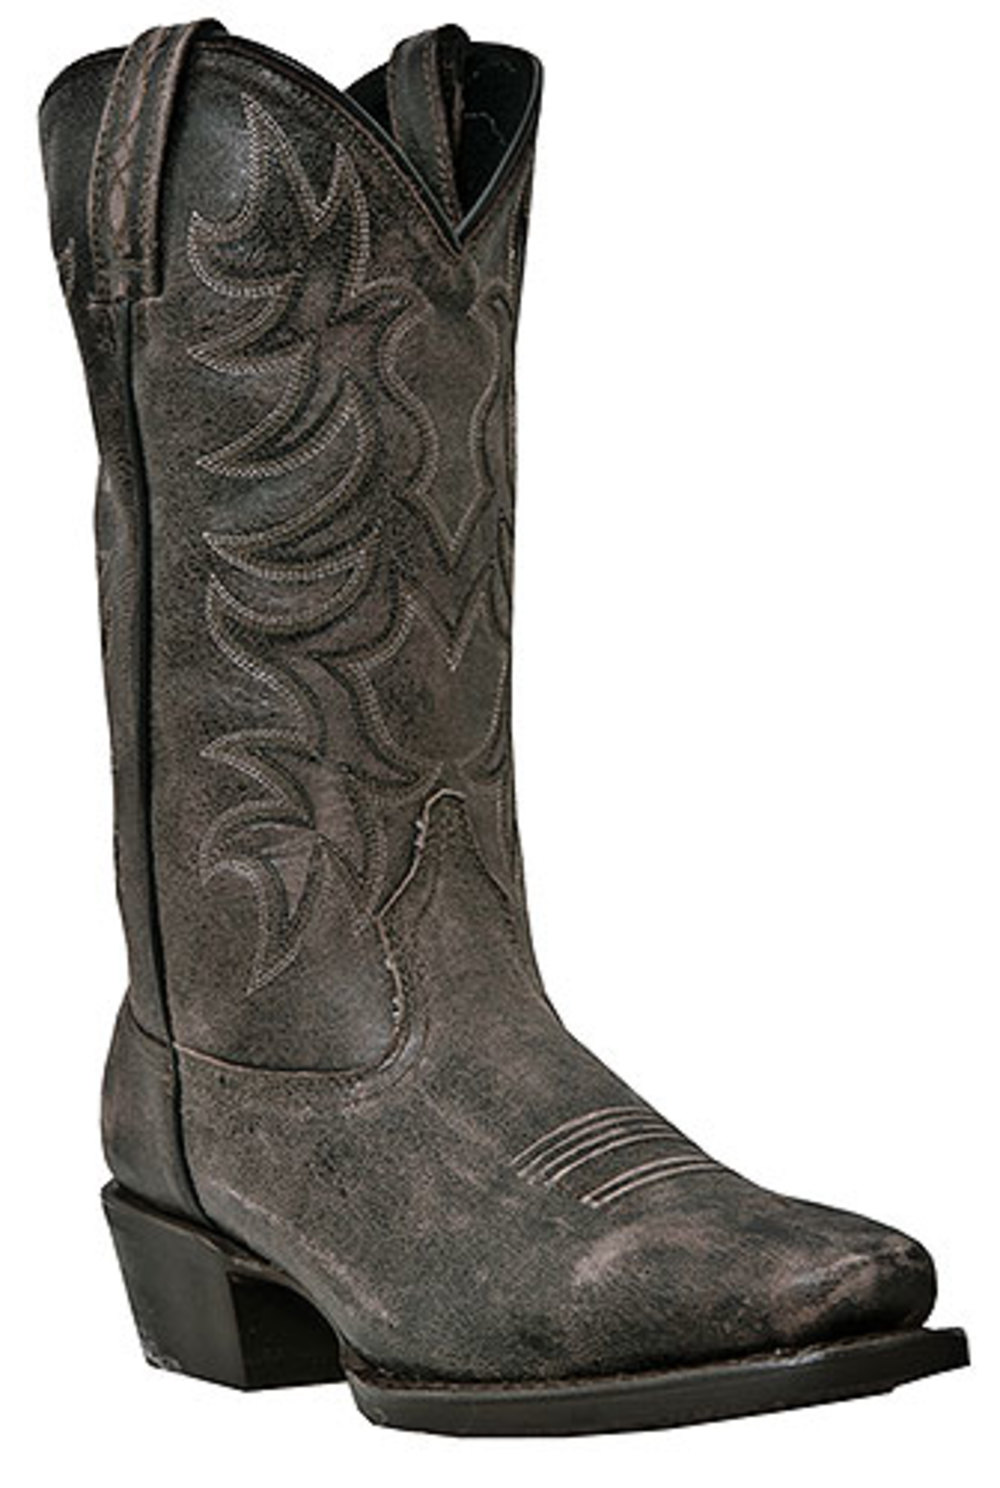 Men's Laredo PIOMOSA Pull On Cowboy Boot BLACK 9.5 D by